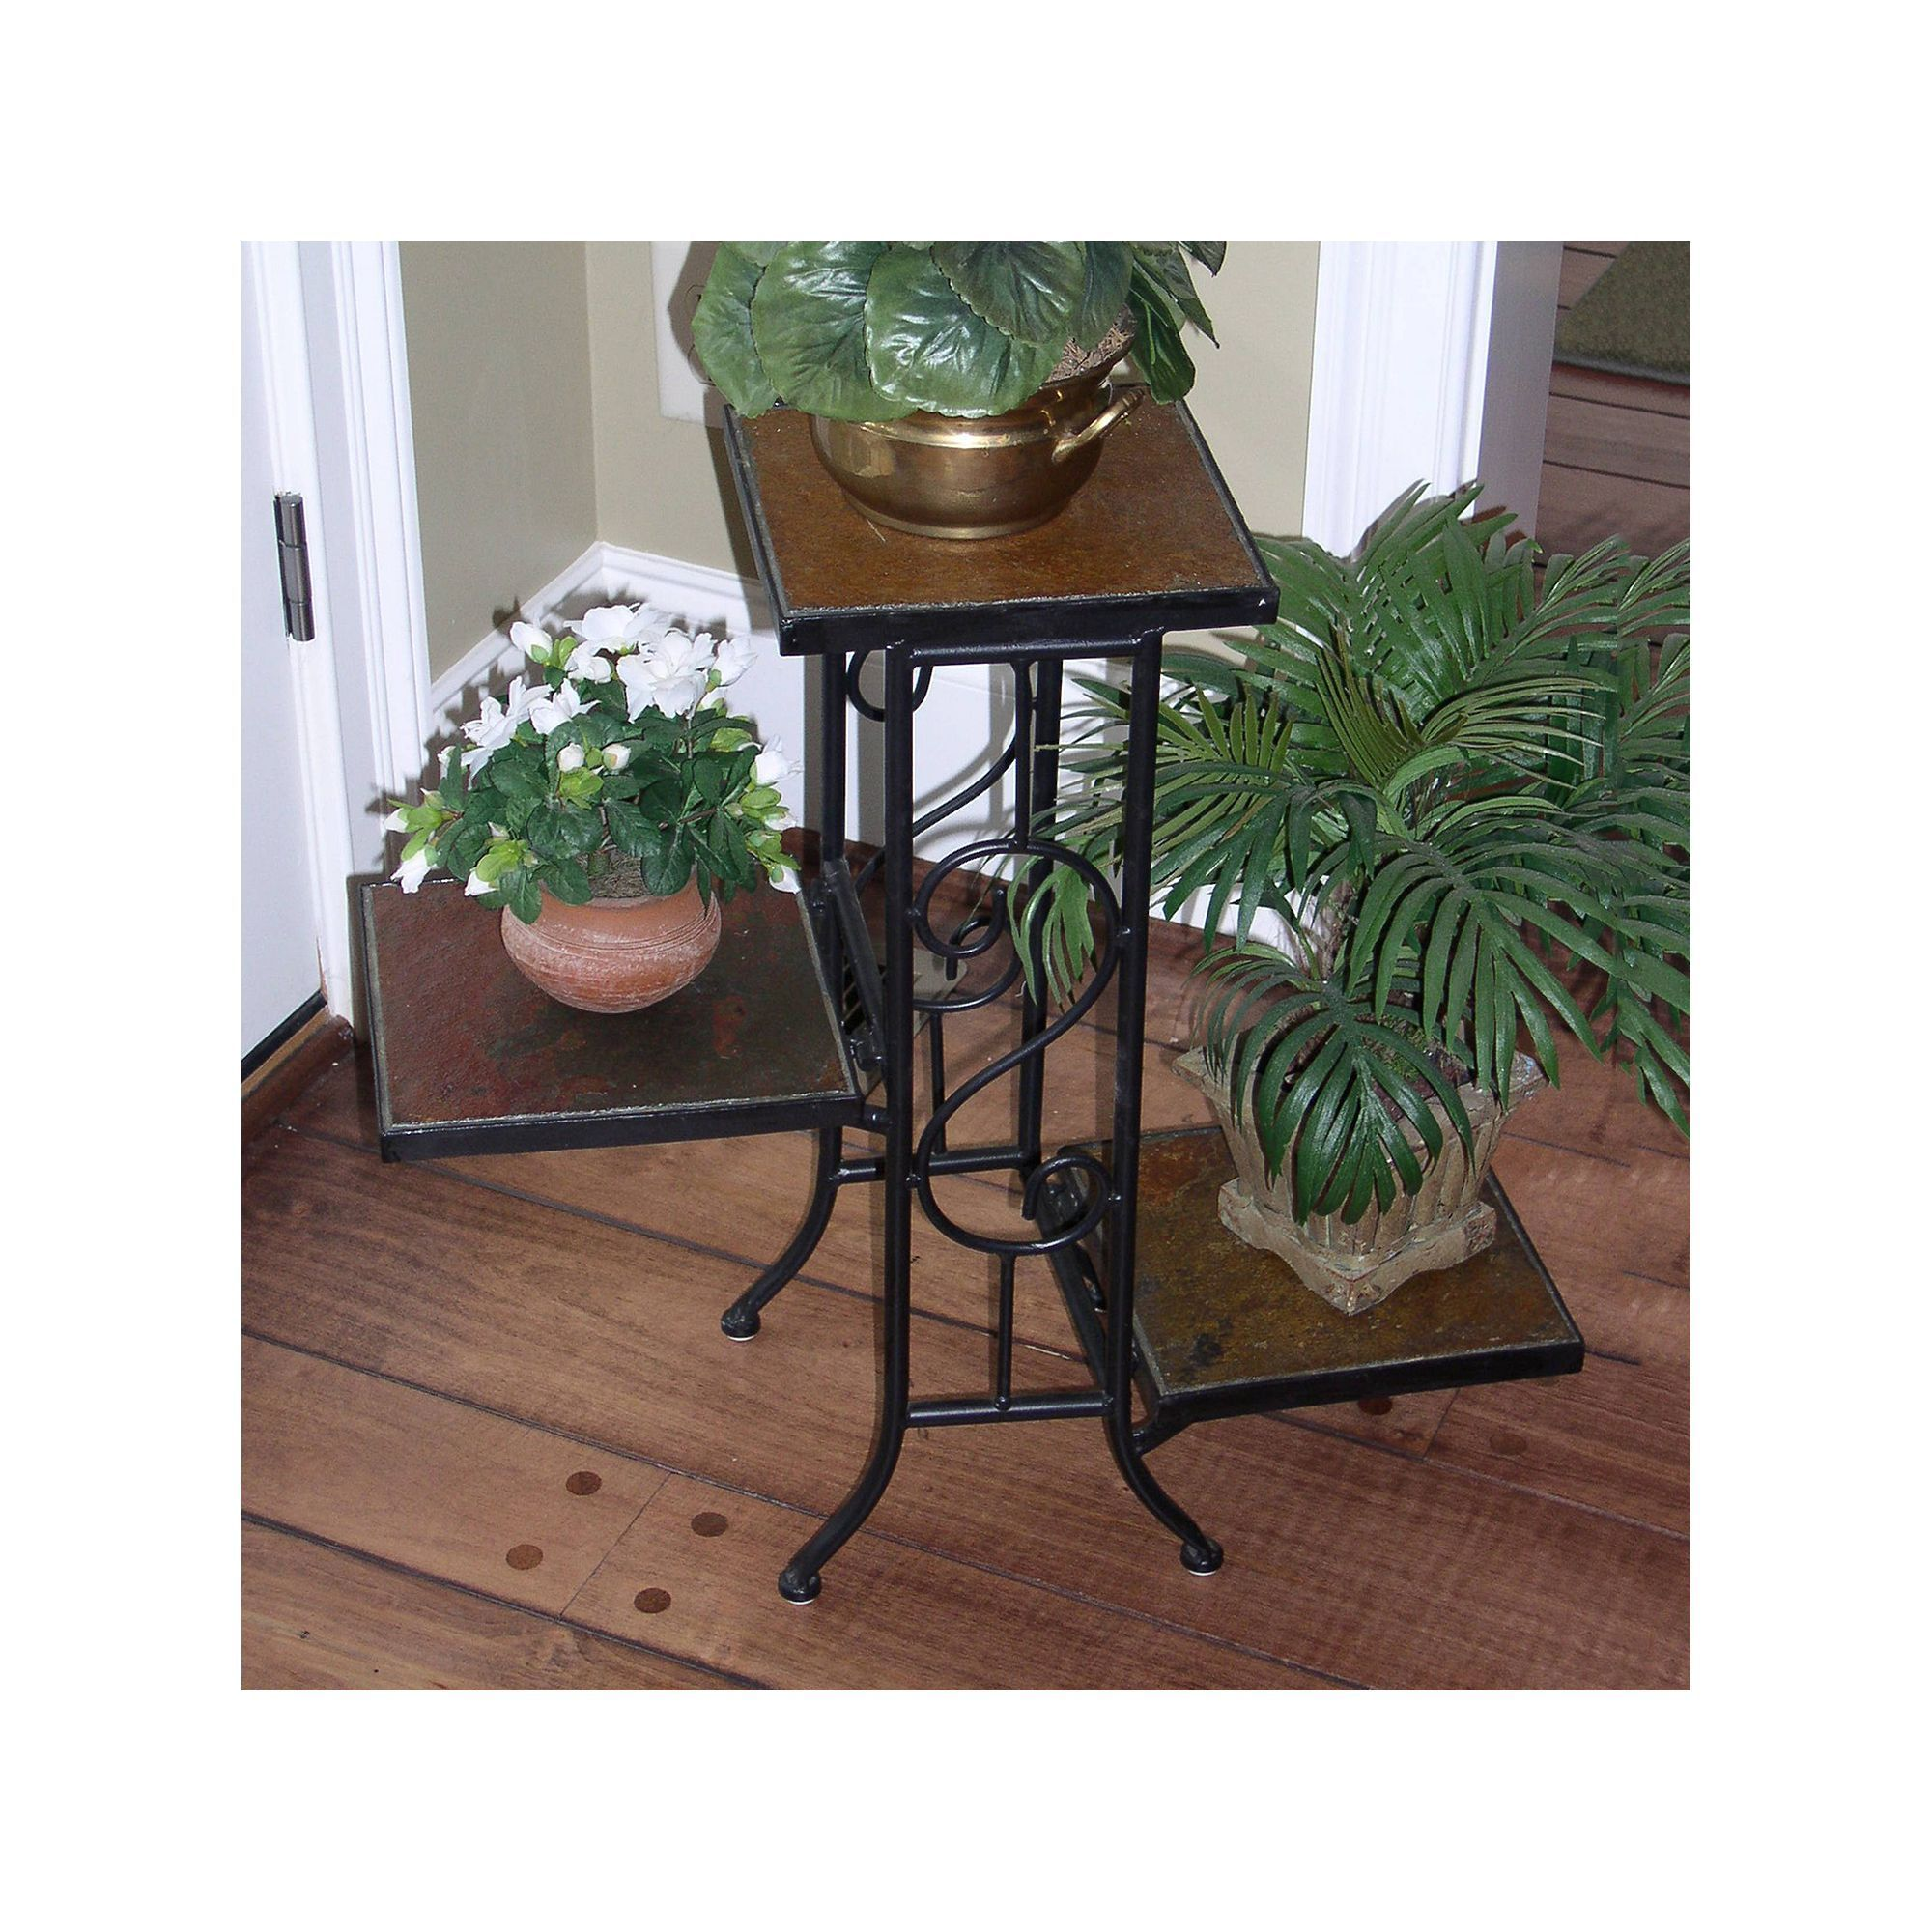 Slate 3 Tier Plant Stand Outdoor Plant Stand Indoor Plant Stands Outdoor Plant Stand